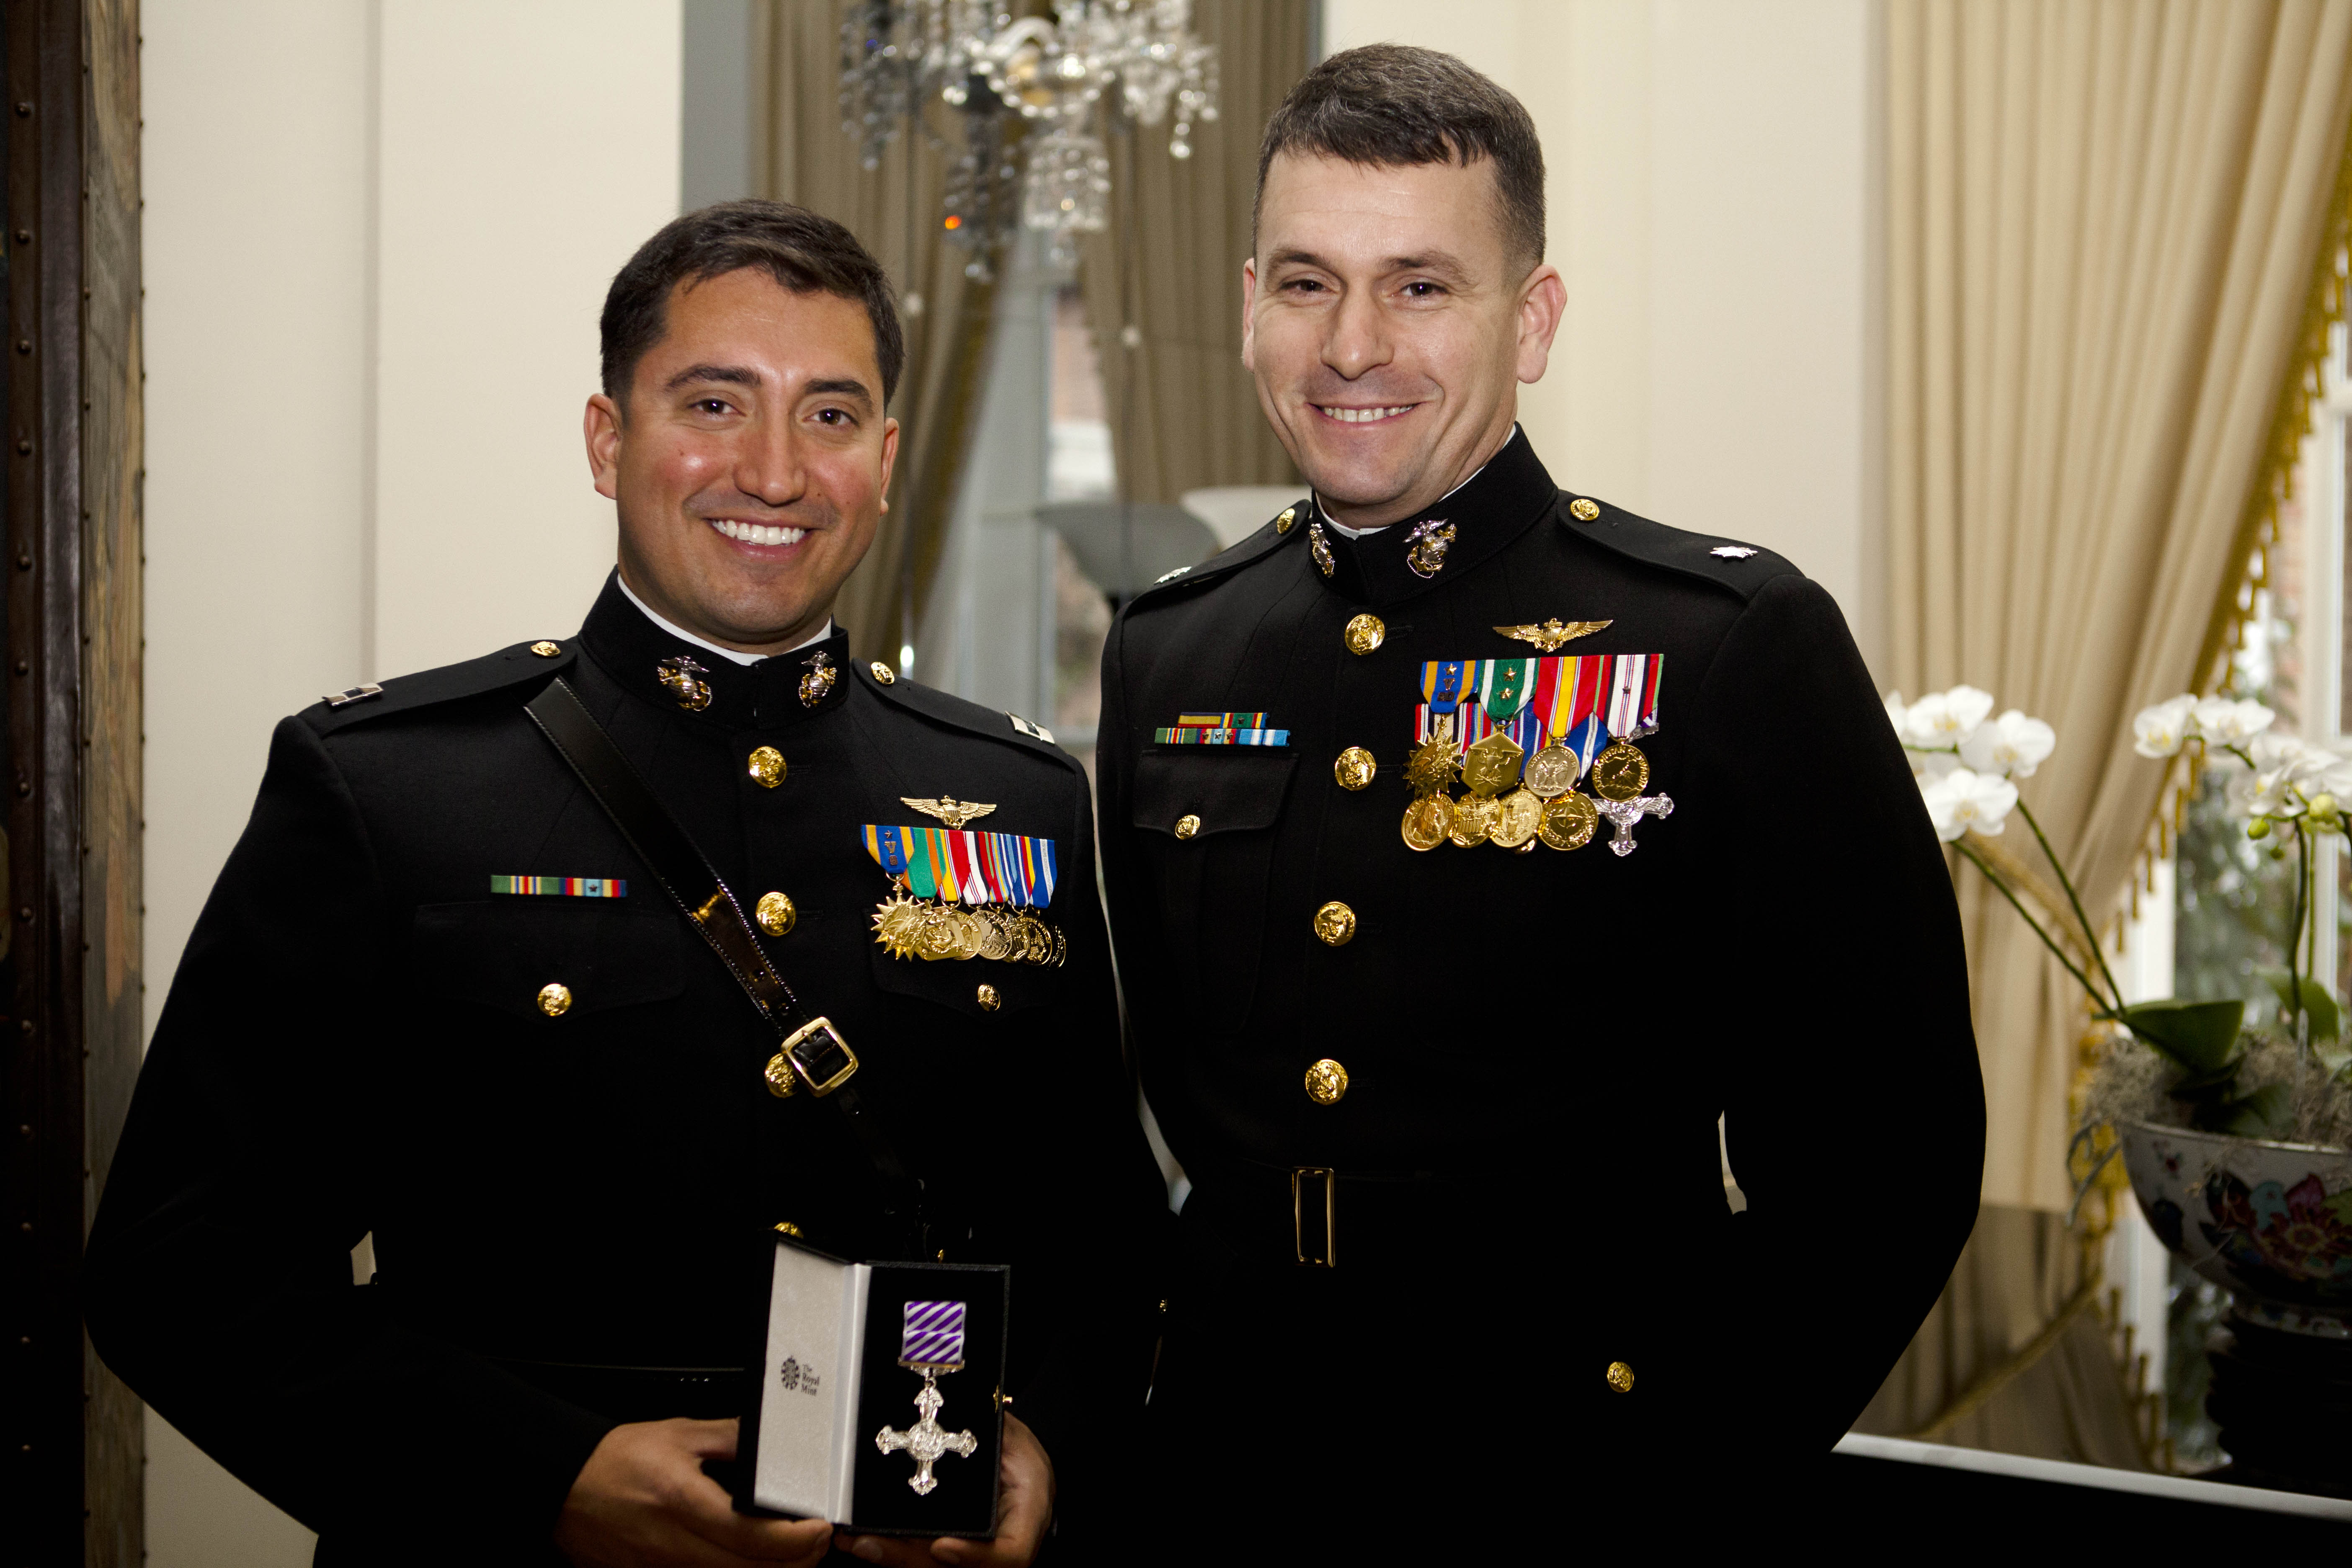 Us Military Medals Chart: Marine aviator receives high-flying British honor for saving lives ,Chart